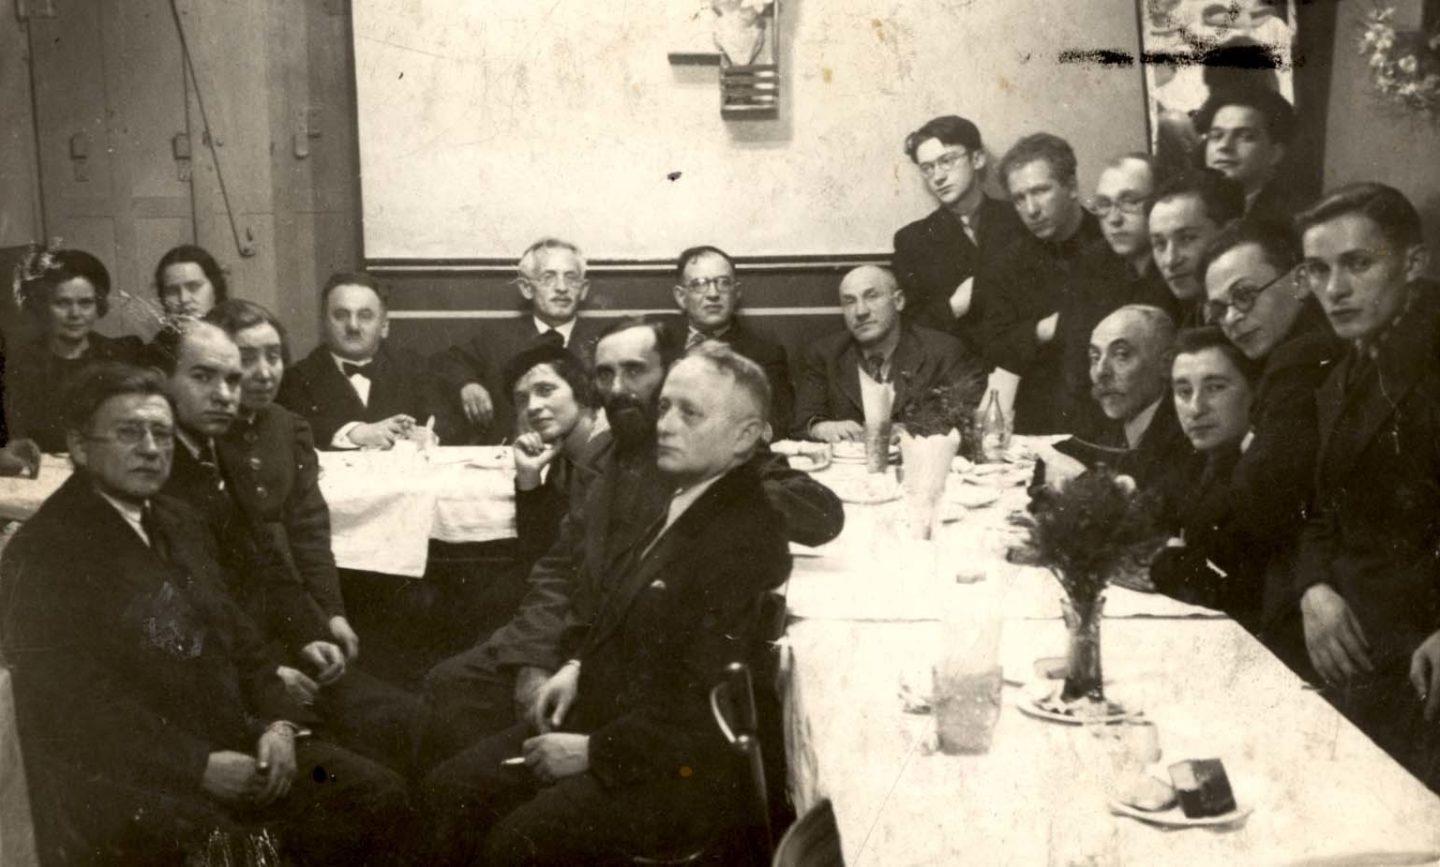 <p>A farewell party for Falk Halperin at Velfke's restaurant in 1938, featuring a who's who of Vilne's Yiddishist cultural milieu. See below for a numbered identification of people in the photograph. Source: Yad Vashem, Photo Archive, Jerusalem, Archival Signature&nbsp;3380/296.</p>